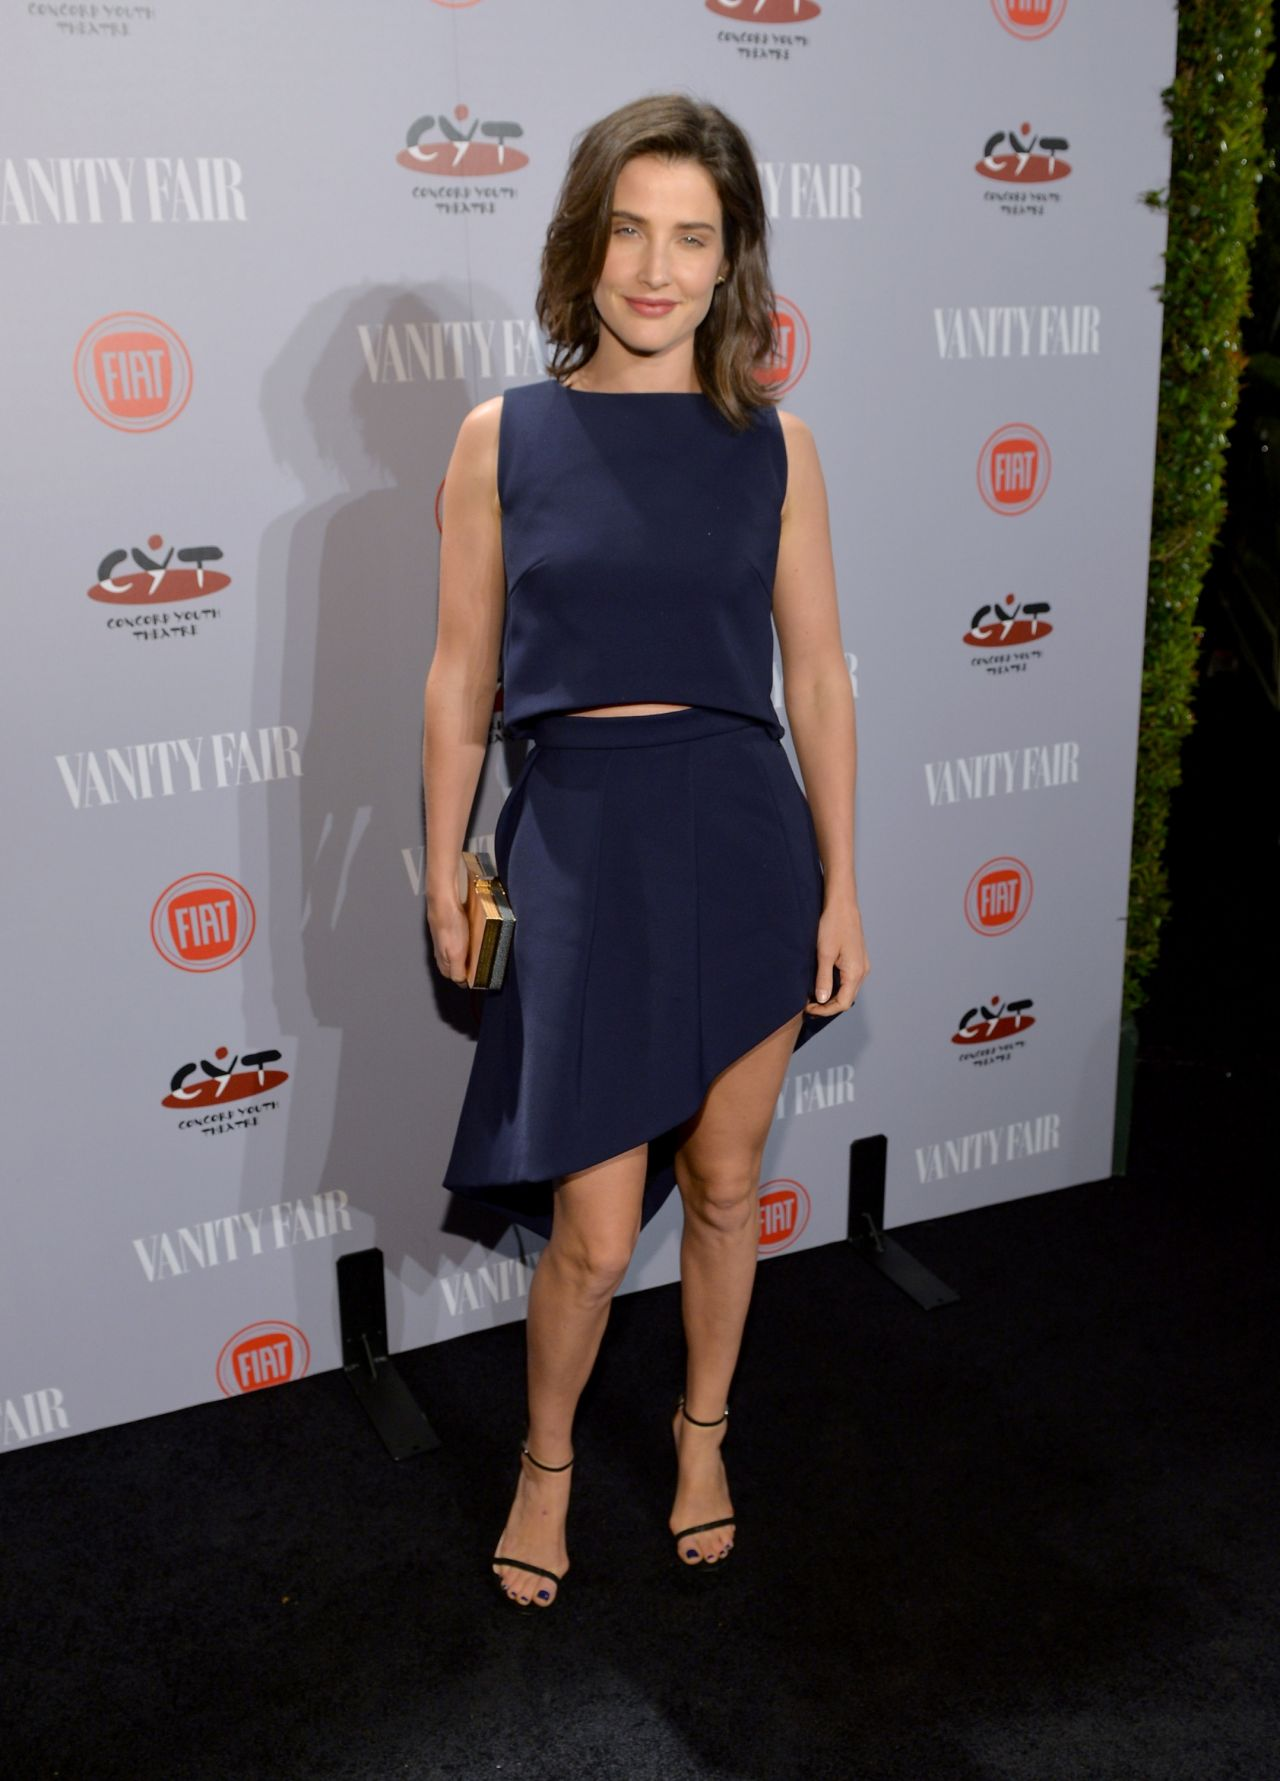 Cobie Smulders – Vanity Fair & FIAT Young Hollywood Event in LA, February 2014